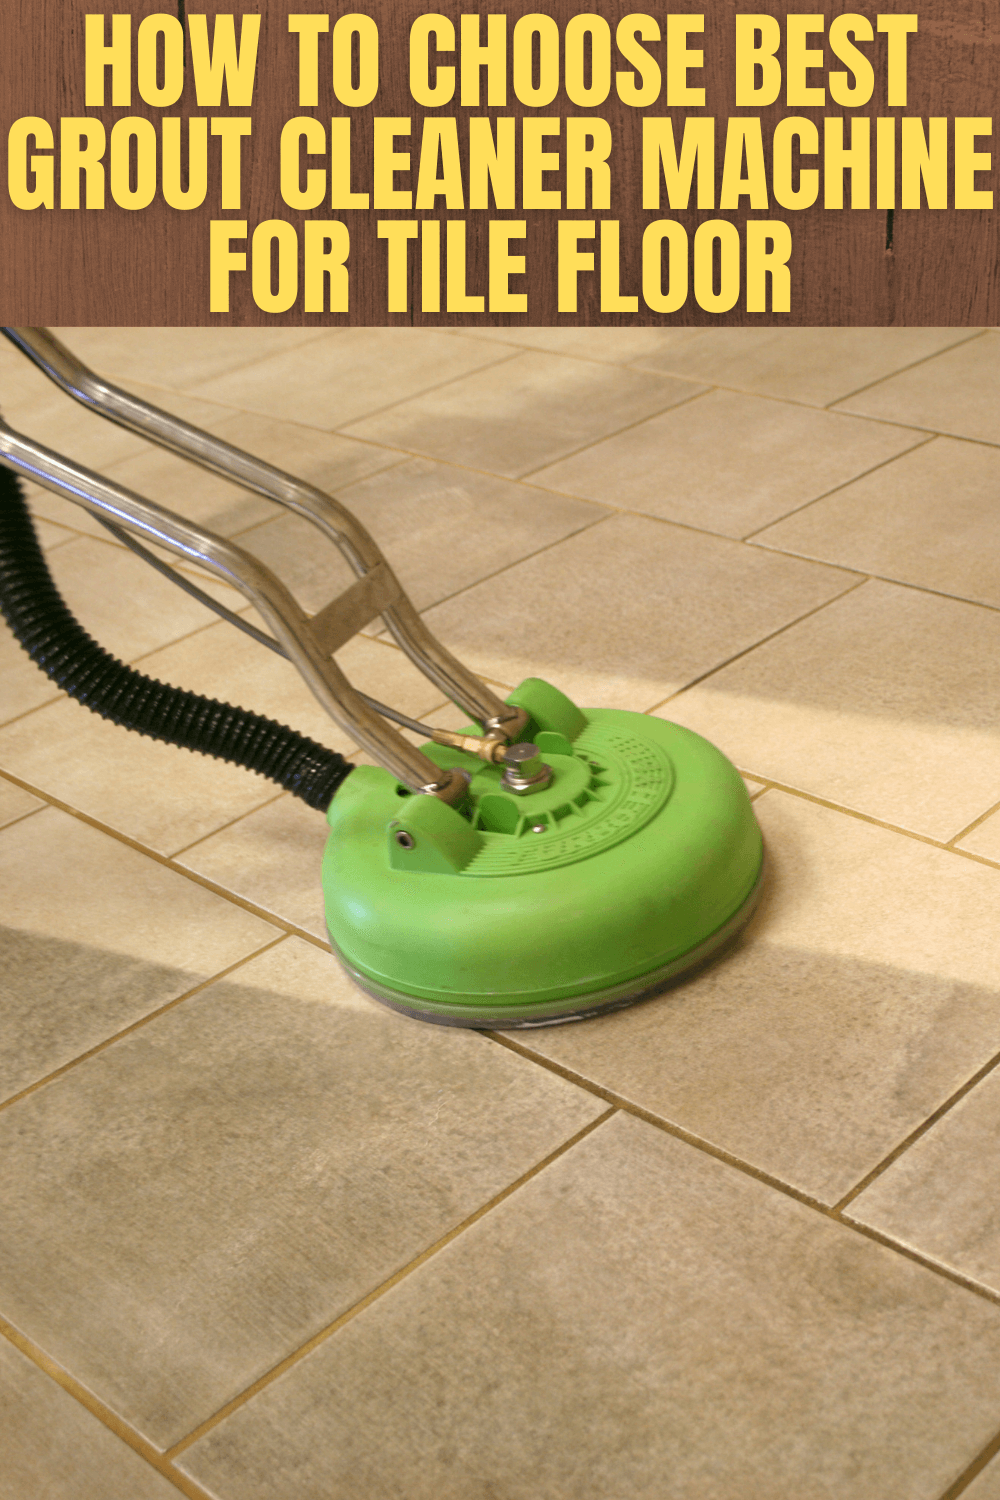 HOW TO CHOOSE BEST GROUT CLEANER MACHINE FOR TILE FLOOR